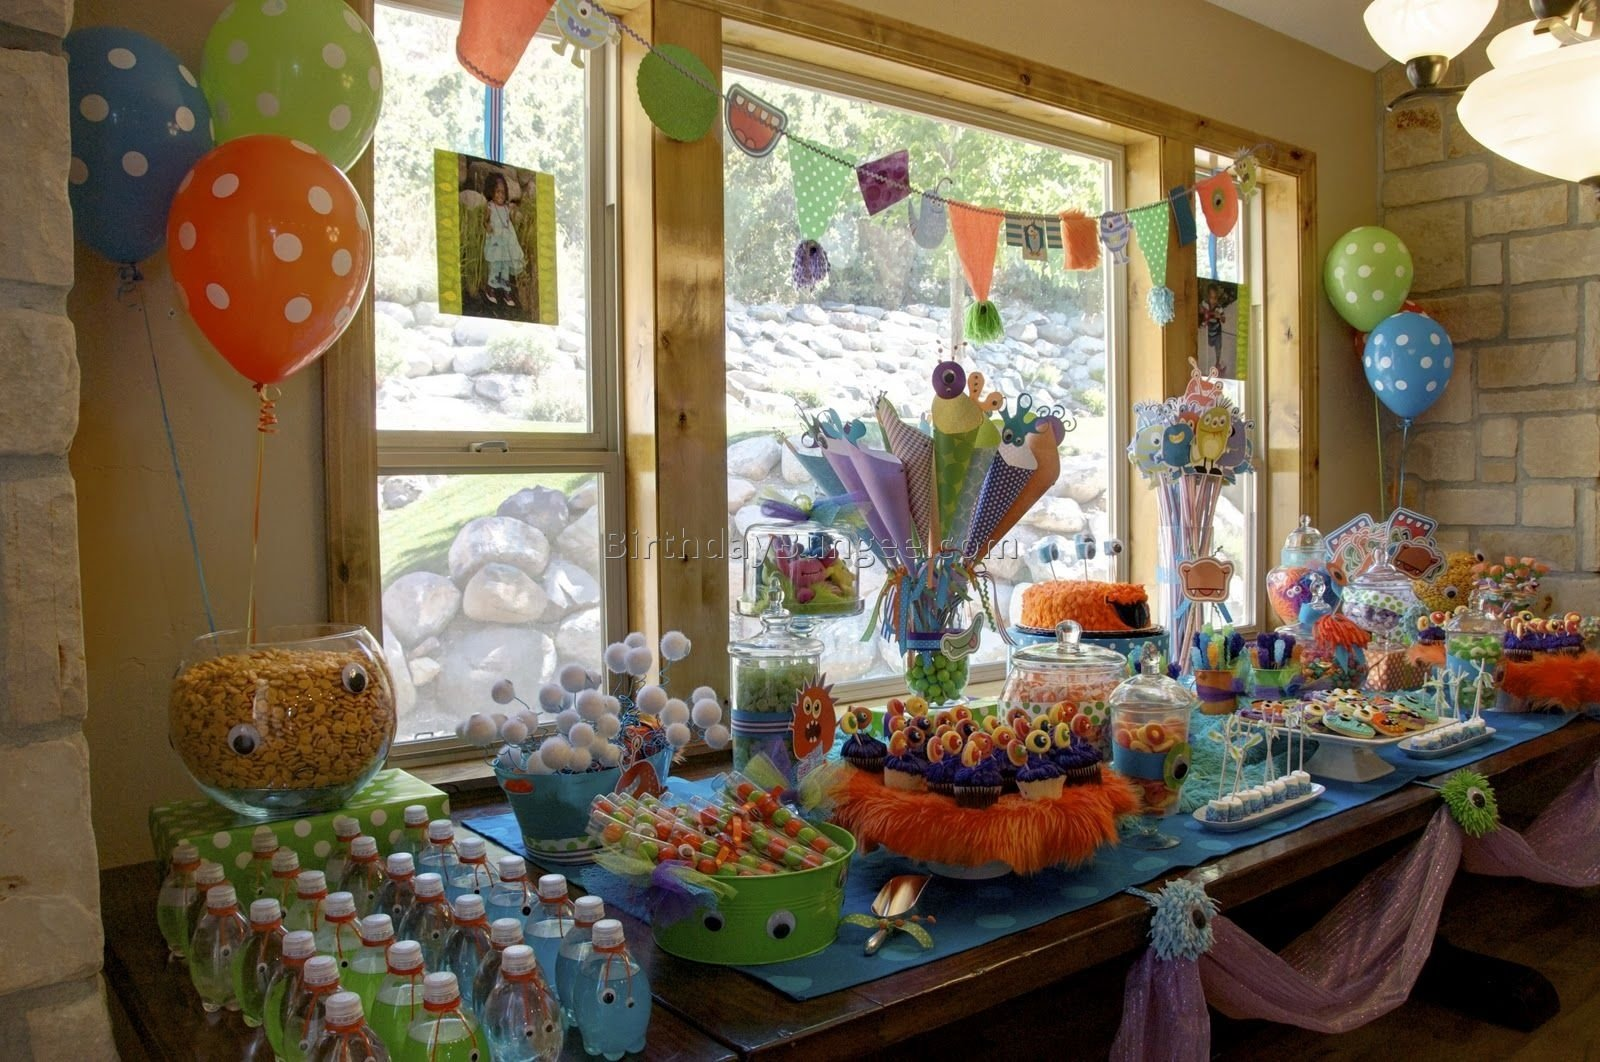 10 Fashionable 13 Year Old Girl Party Ideas 11 year old birthday party ideas at home home design ideas 13 2020